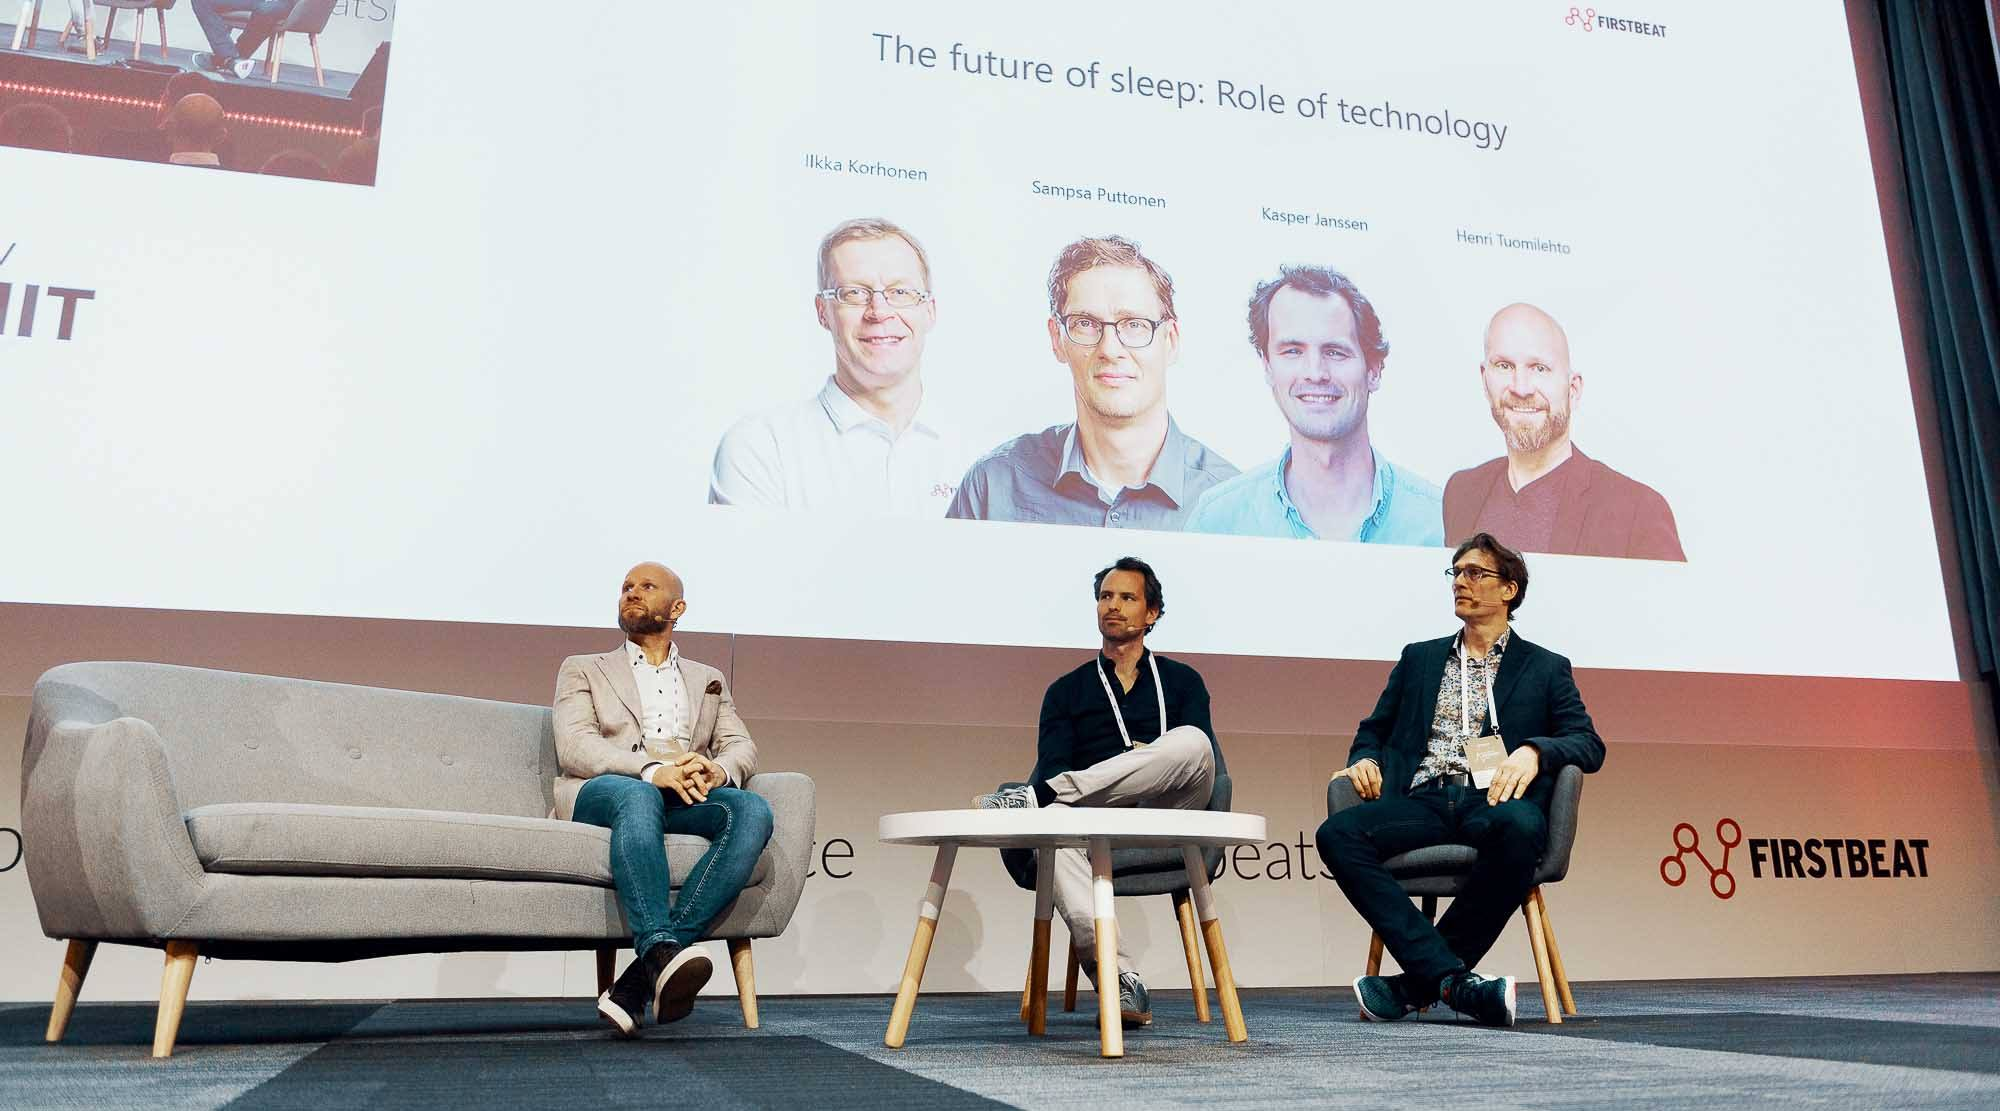 The future of sleep: Role of technology Panel discussion